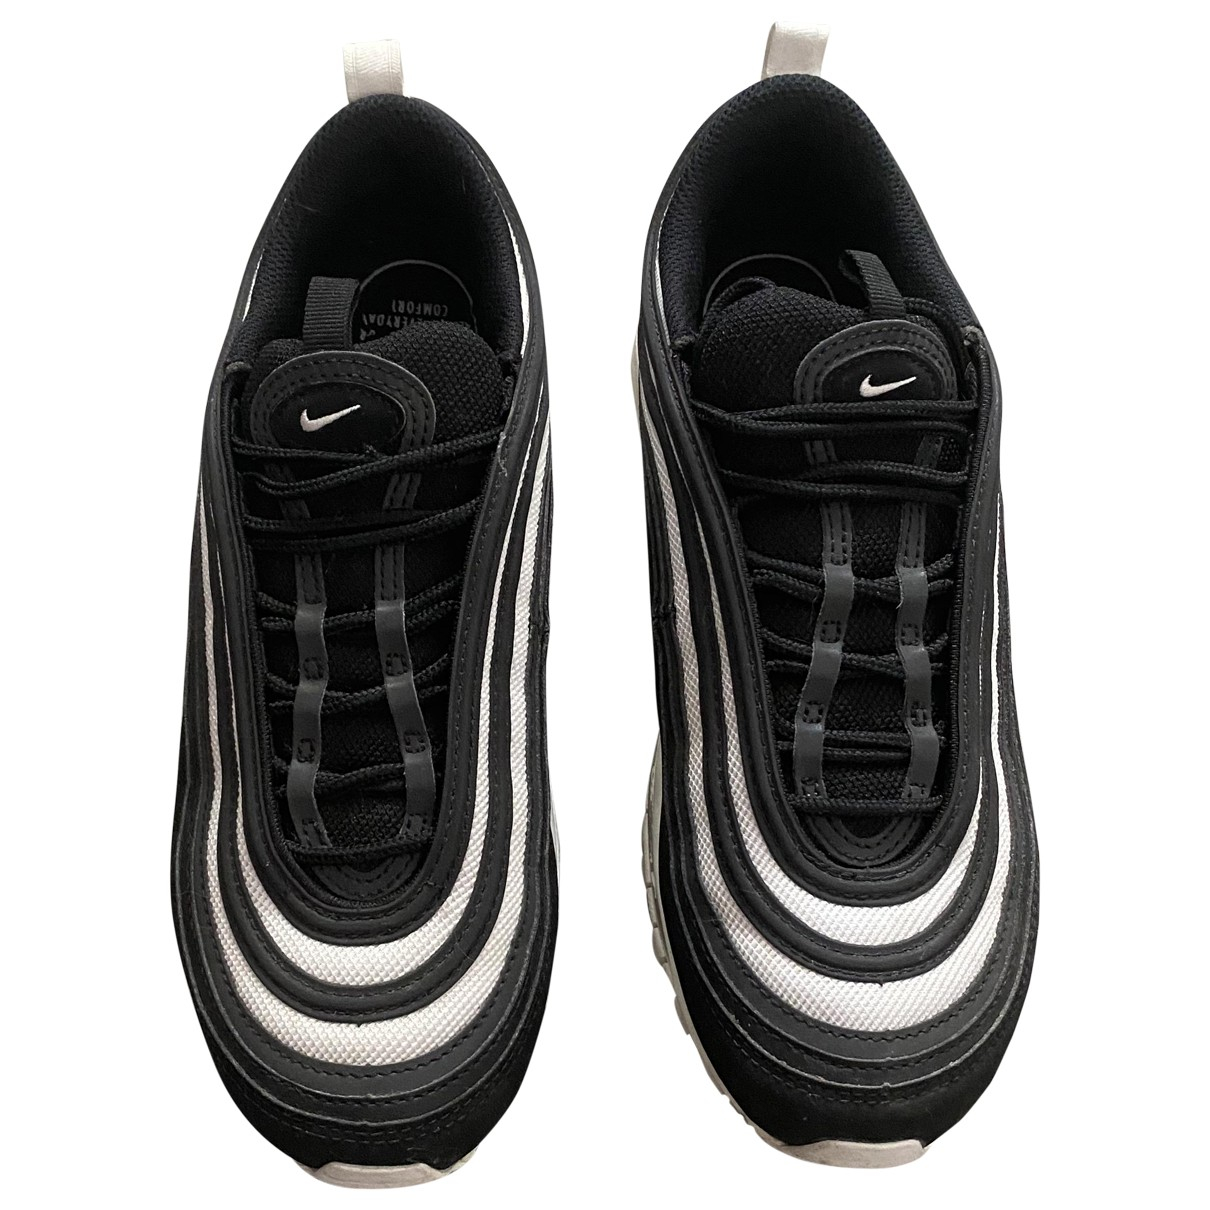 Nike Air Max 97 Black Rubber Trainers for Women 39 EU